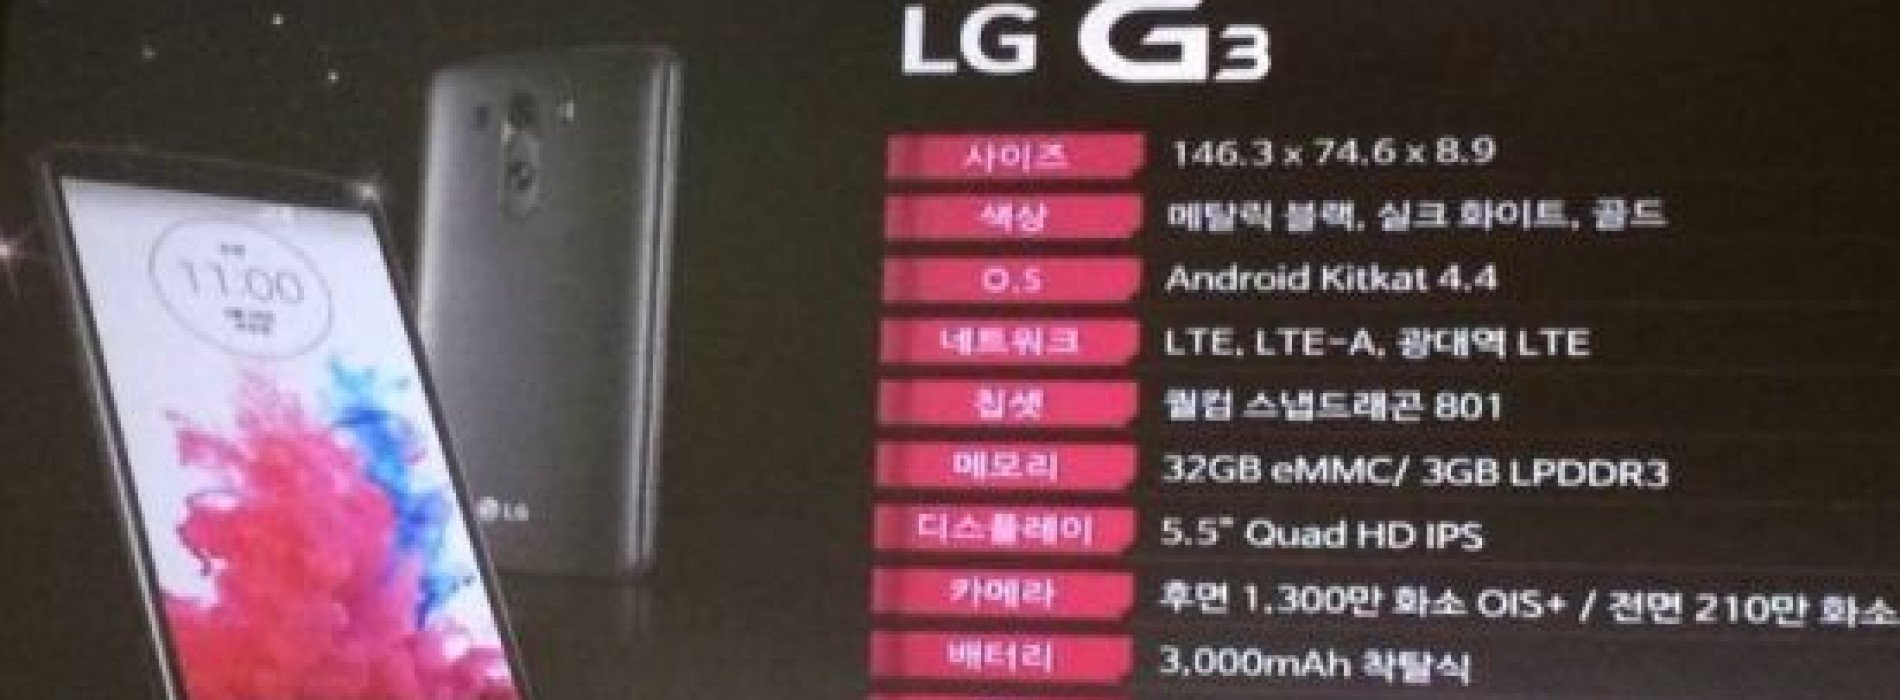 LG G3 specs all but official thanks to new leak